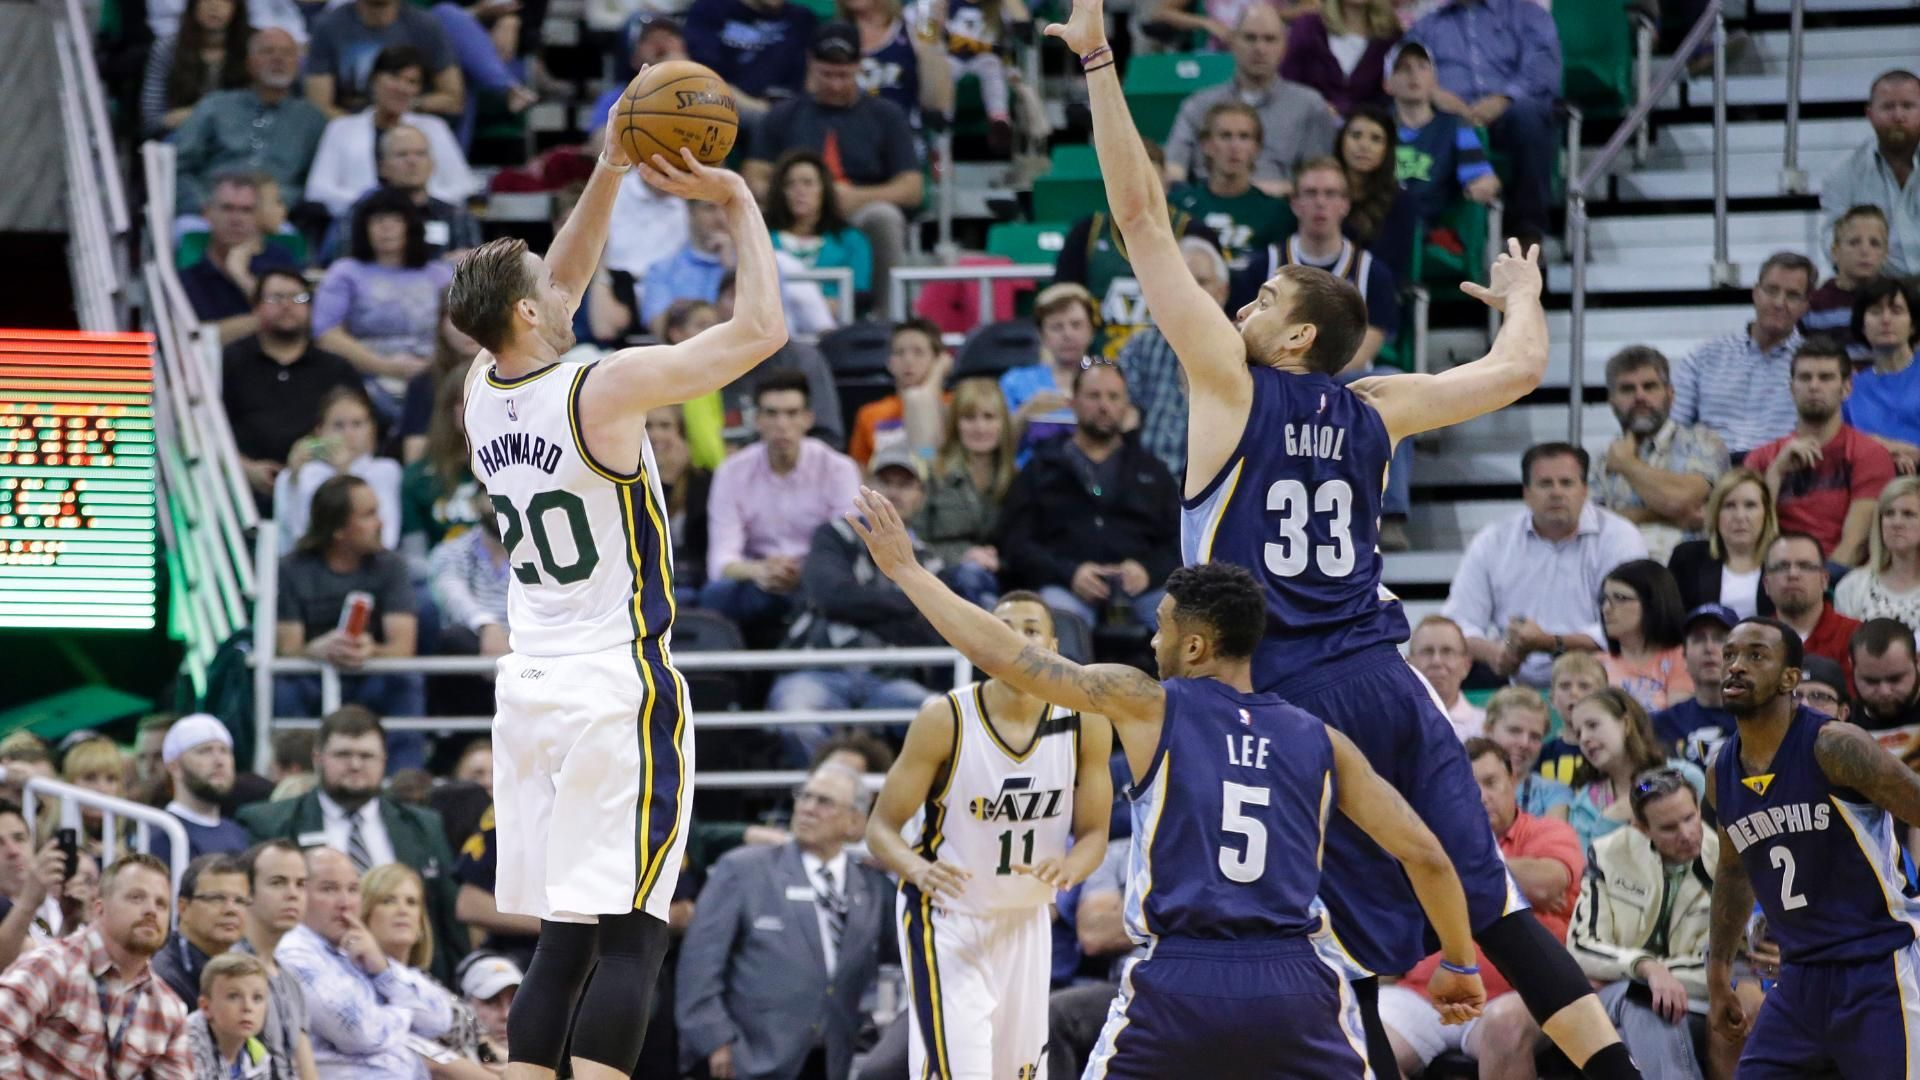 Grizzlies top Jazz in crazy fashion - http://debonyface.com/grizzlies-top-jazz-in-crazy-fashion/  Visit http://debonyface.com to read more on this topic